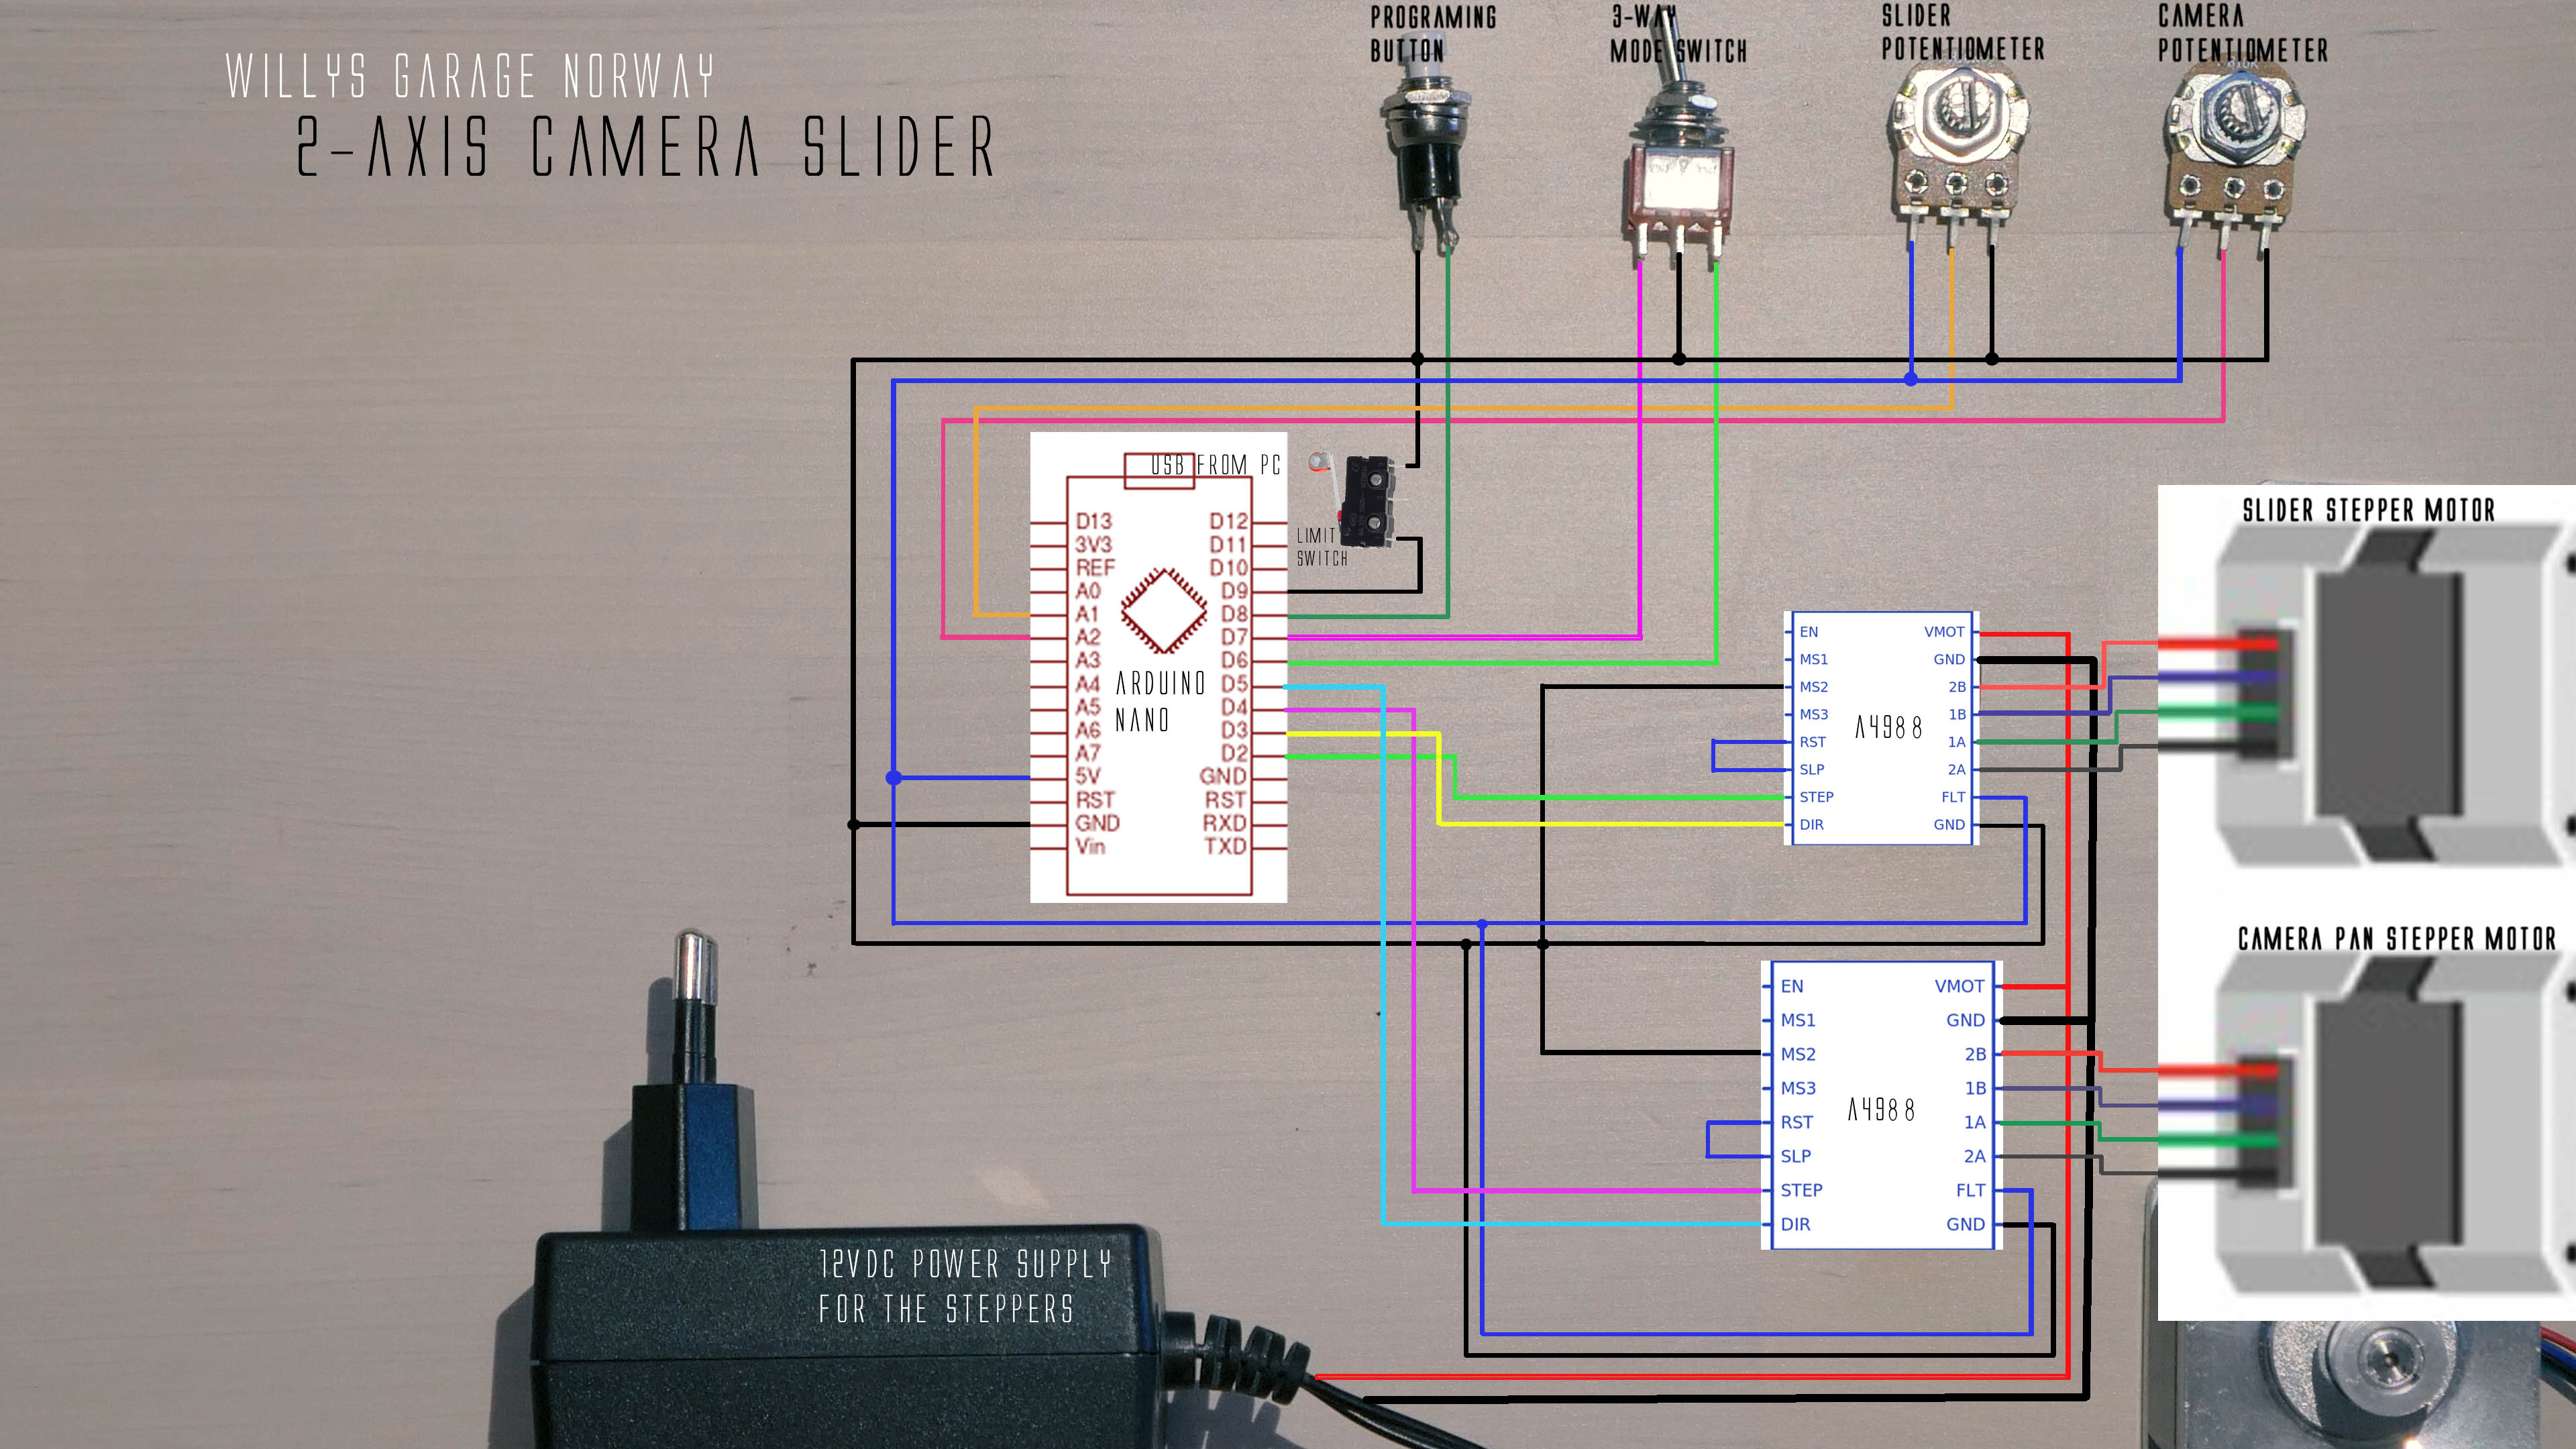 Diagrams. Camera Slider 2-axis; CNC shield